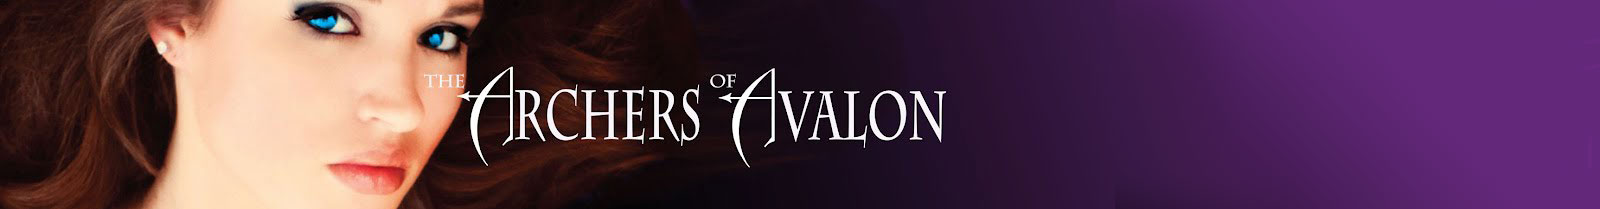 The Archers of Avalon